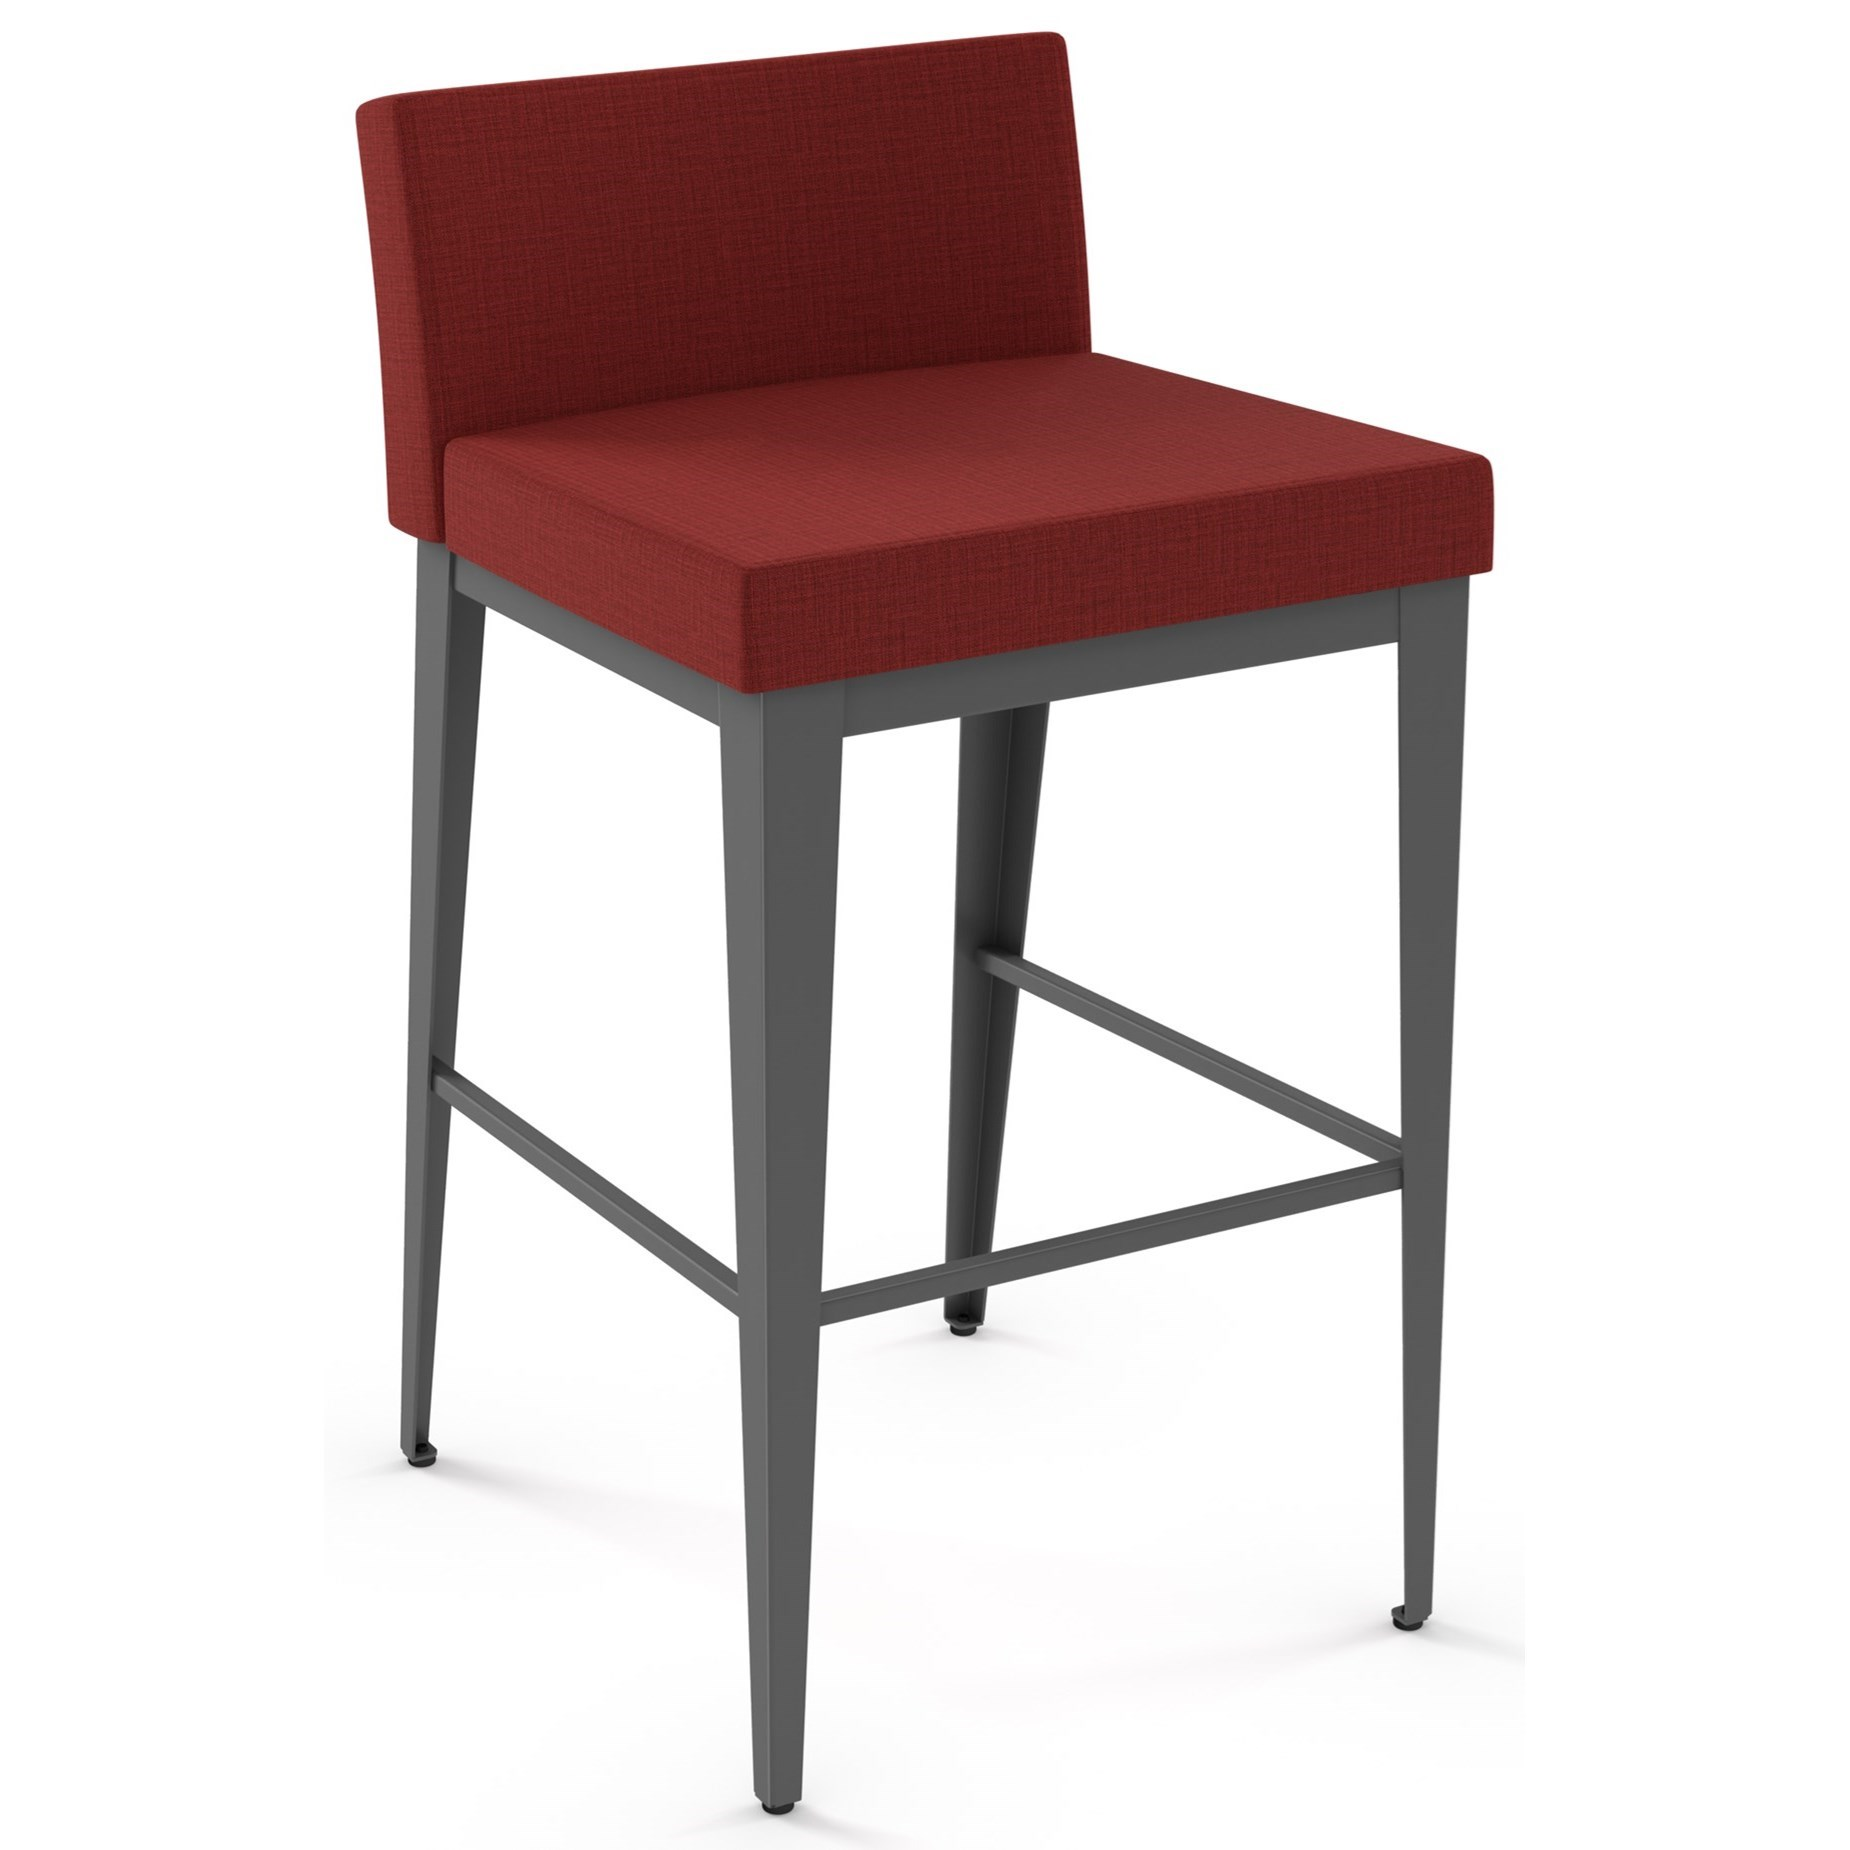 "Boudoir 30"" Ethan Plus Bar Stool by Amisco at Jordan's Home Furnishings"